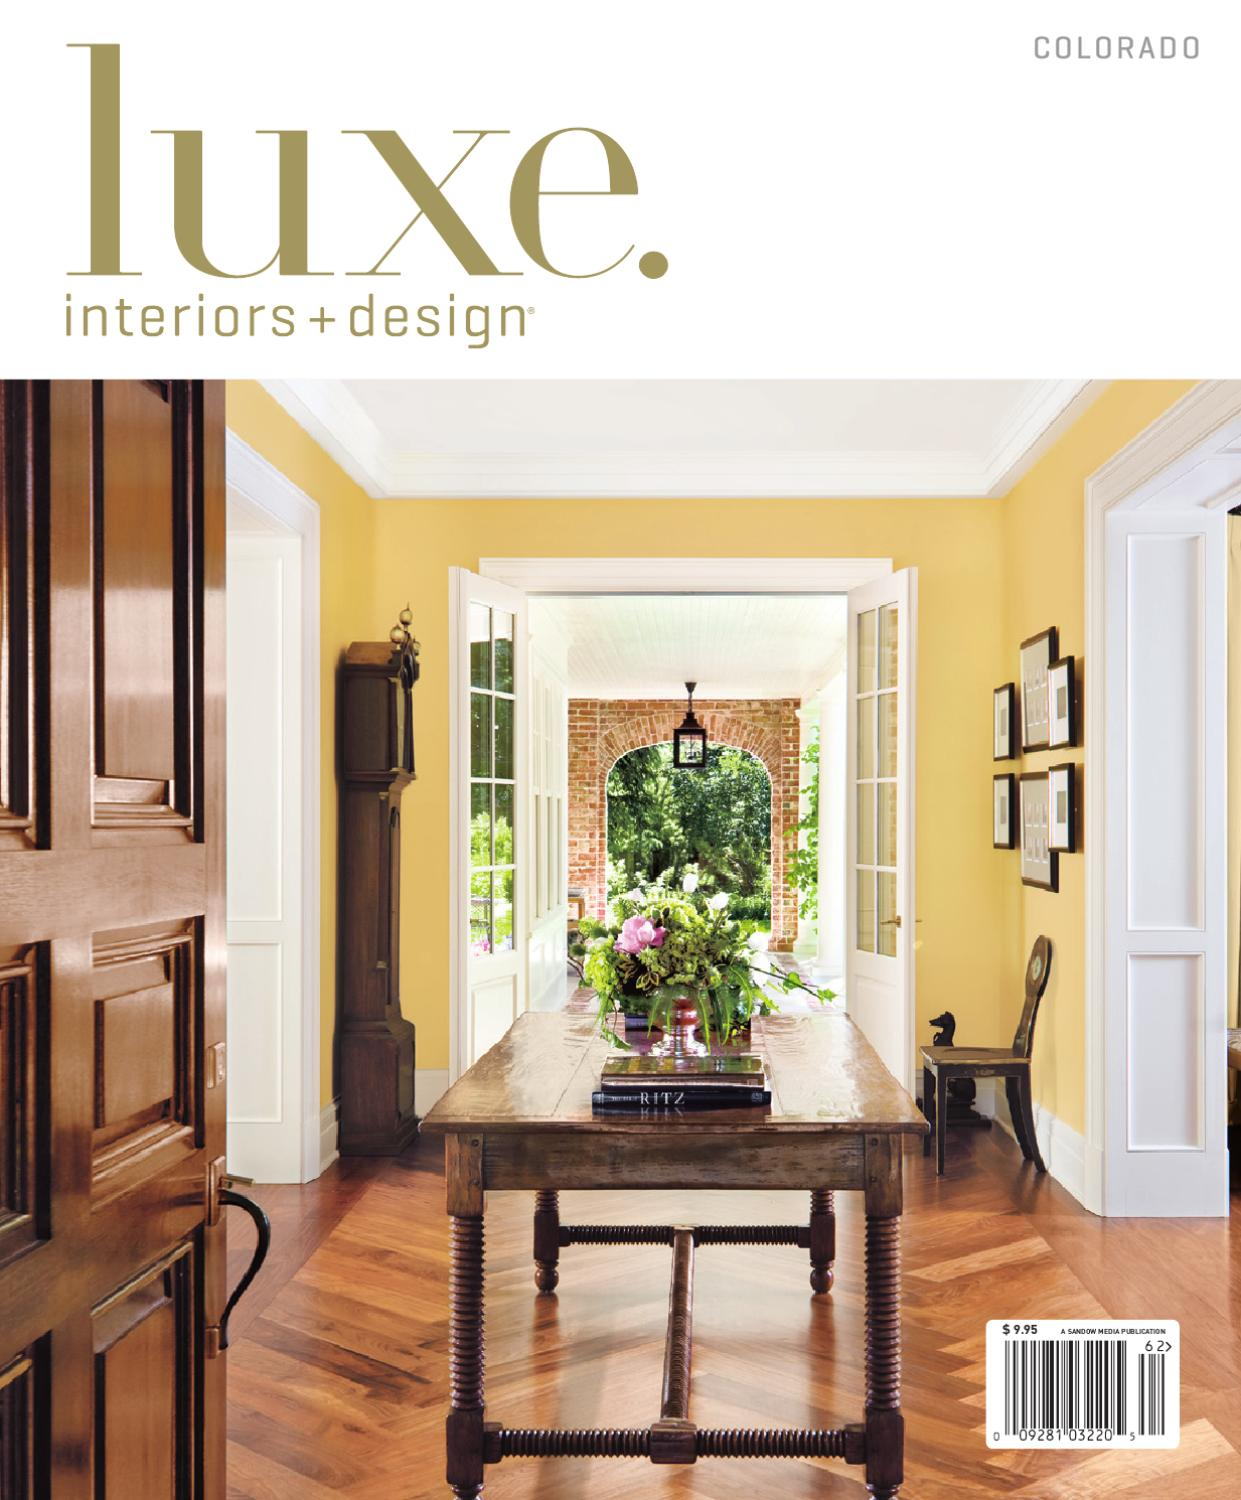 Luxe Interior Design Colorado By Sandow Media Issuu